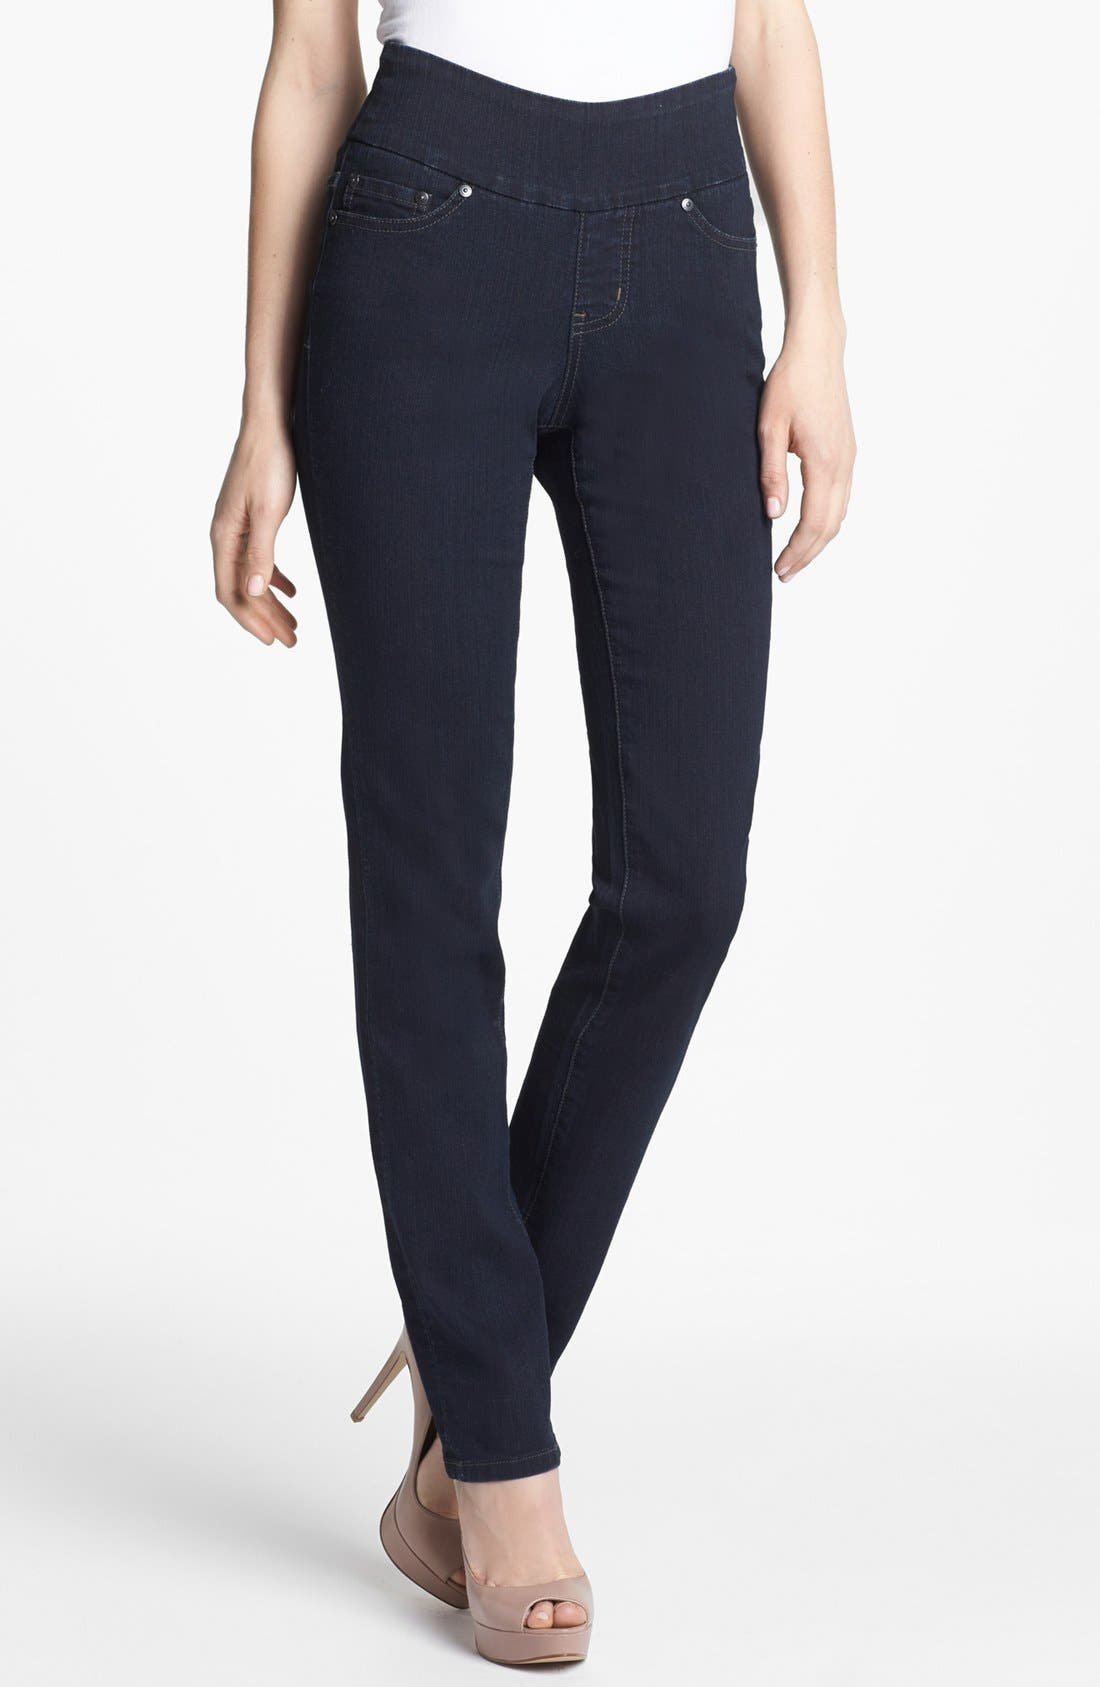 Alternate Image 1 Selected - Jag Jeans 'Peri' Pull-On Straight Leg Jeans (Petite) (After Midnight)